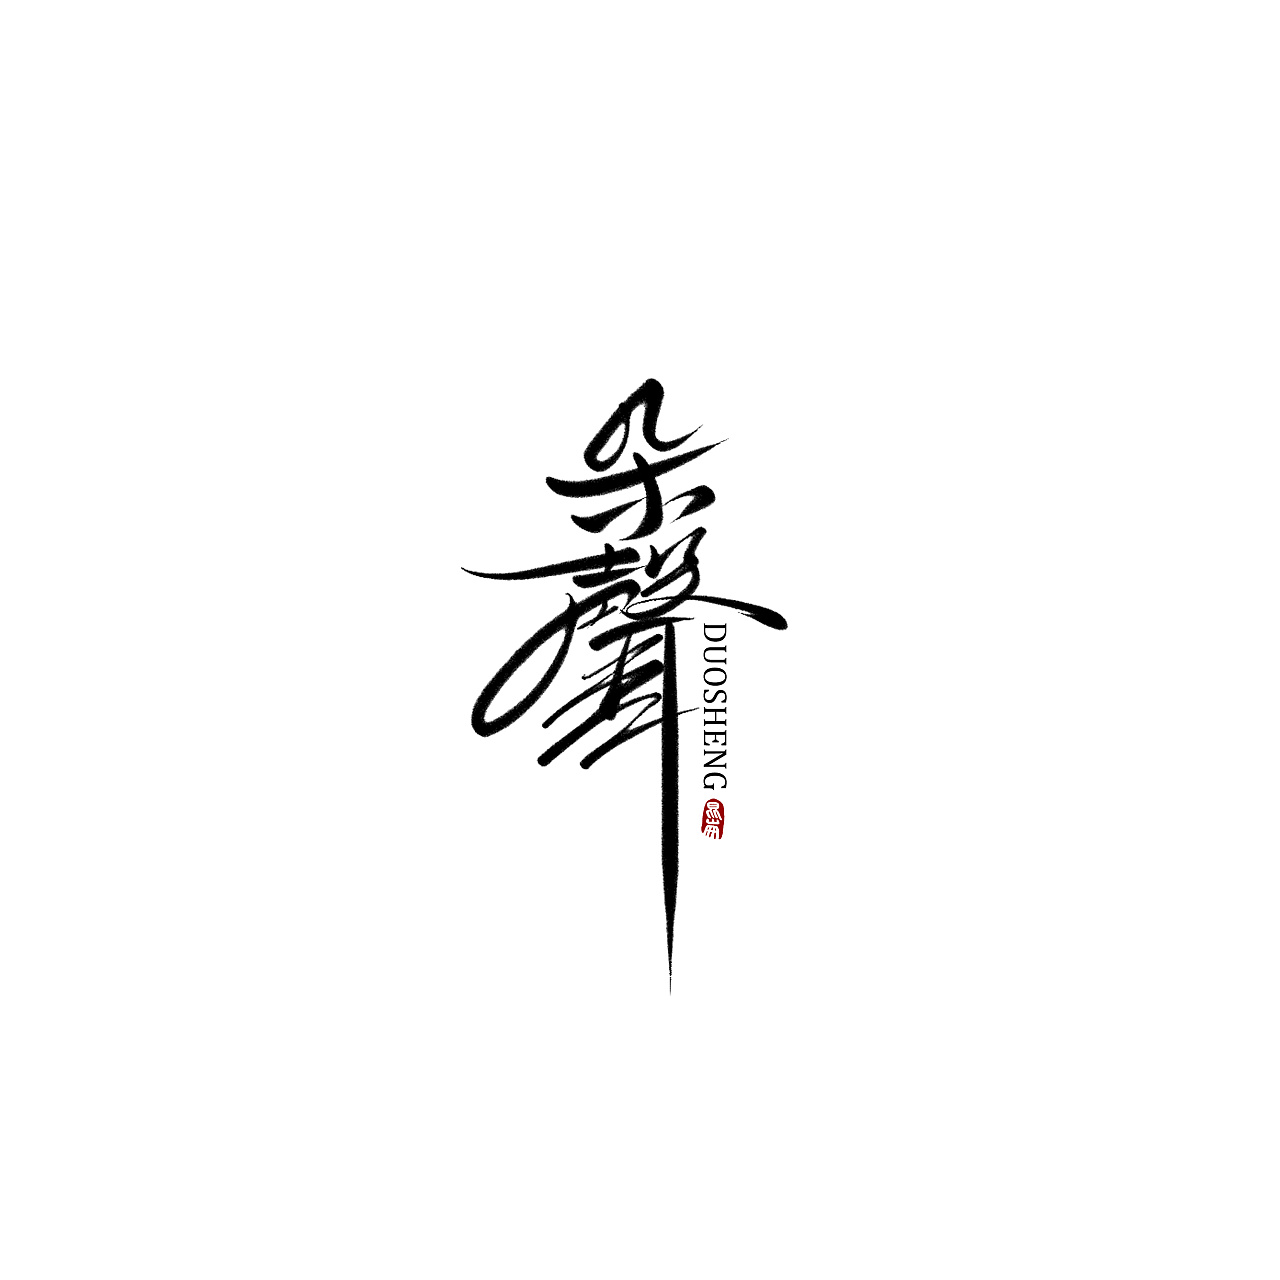 Chinese Creative Font Design-Chinese culture has a long history, and religious culture is also flourishing.